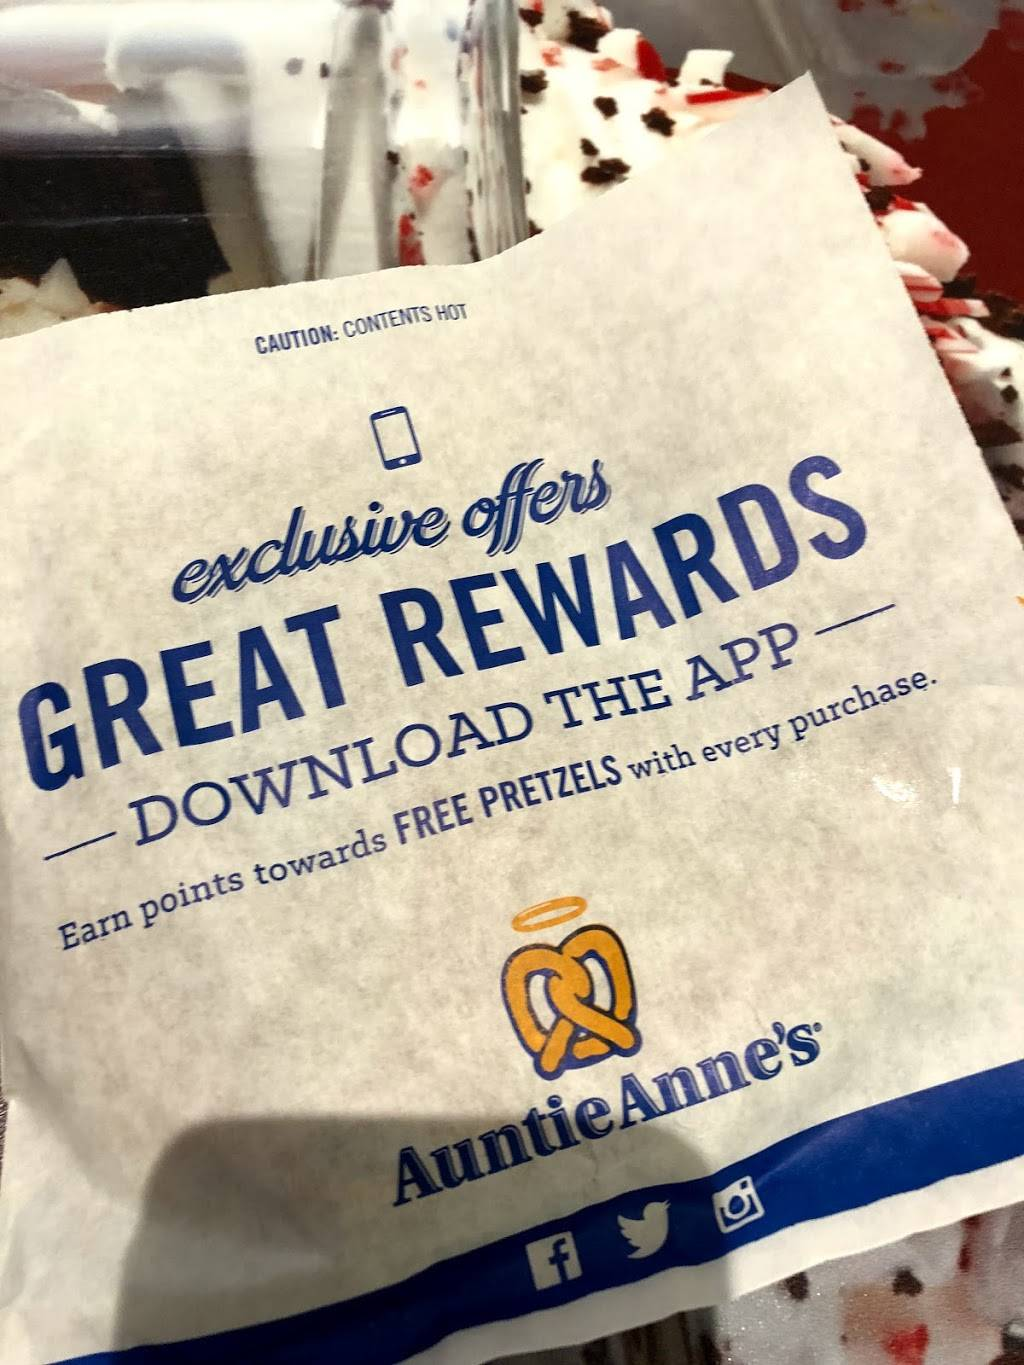 Auntie Annes   cafe   400 Commons Way #338, Bridgewater, NJ 08807, USA   9082180780 OR +1 908-218-0780